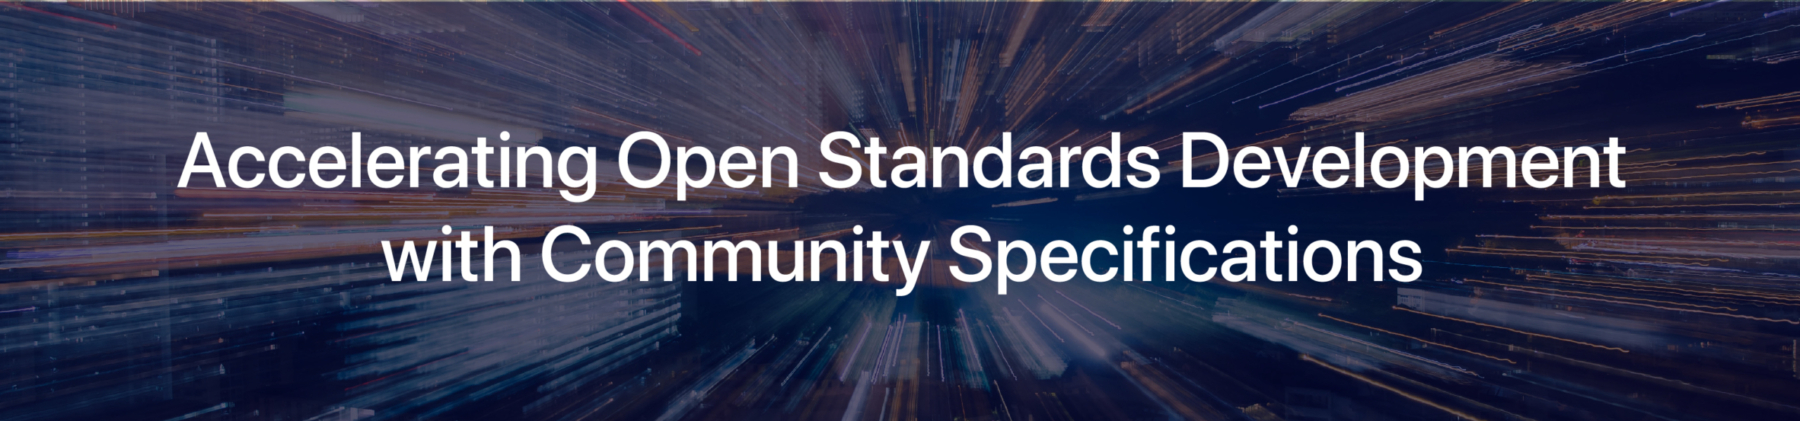 Accelerating Open Standards development with Community Specifications